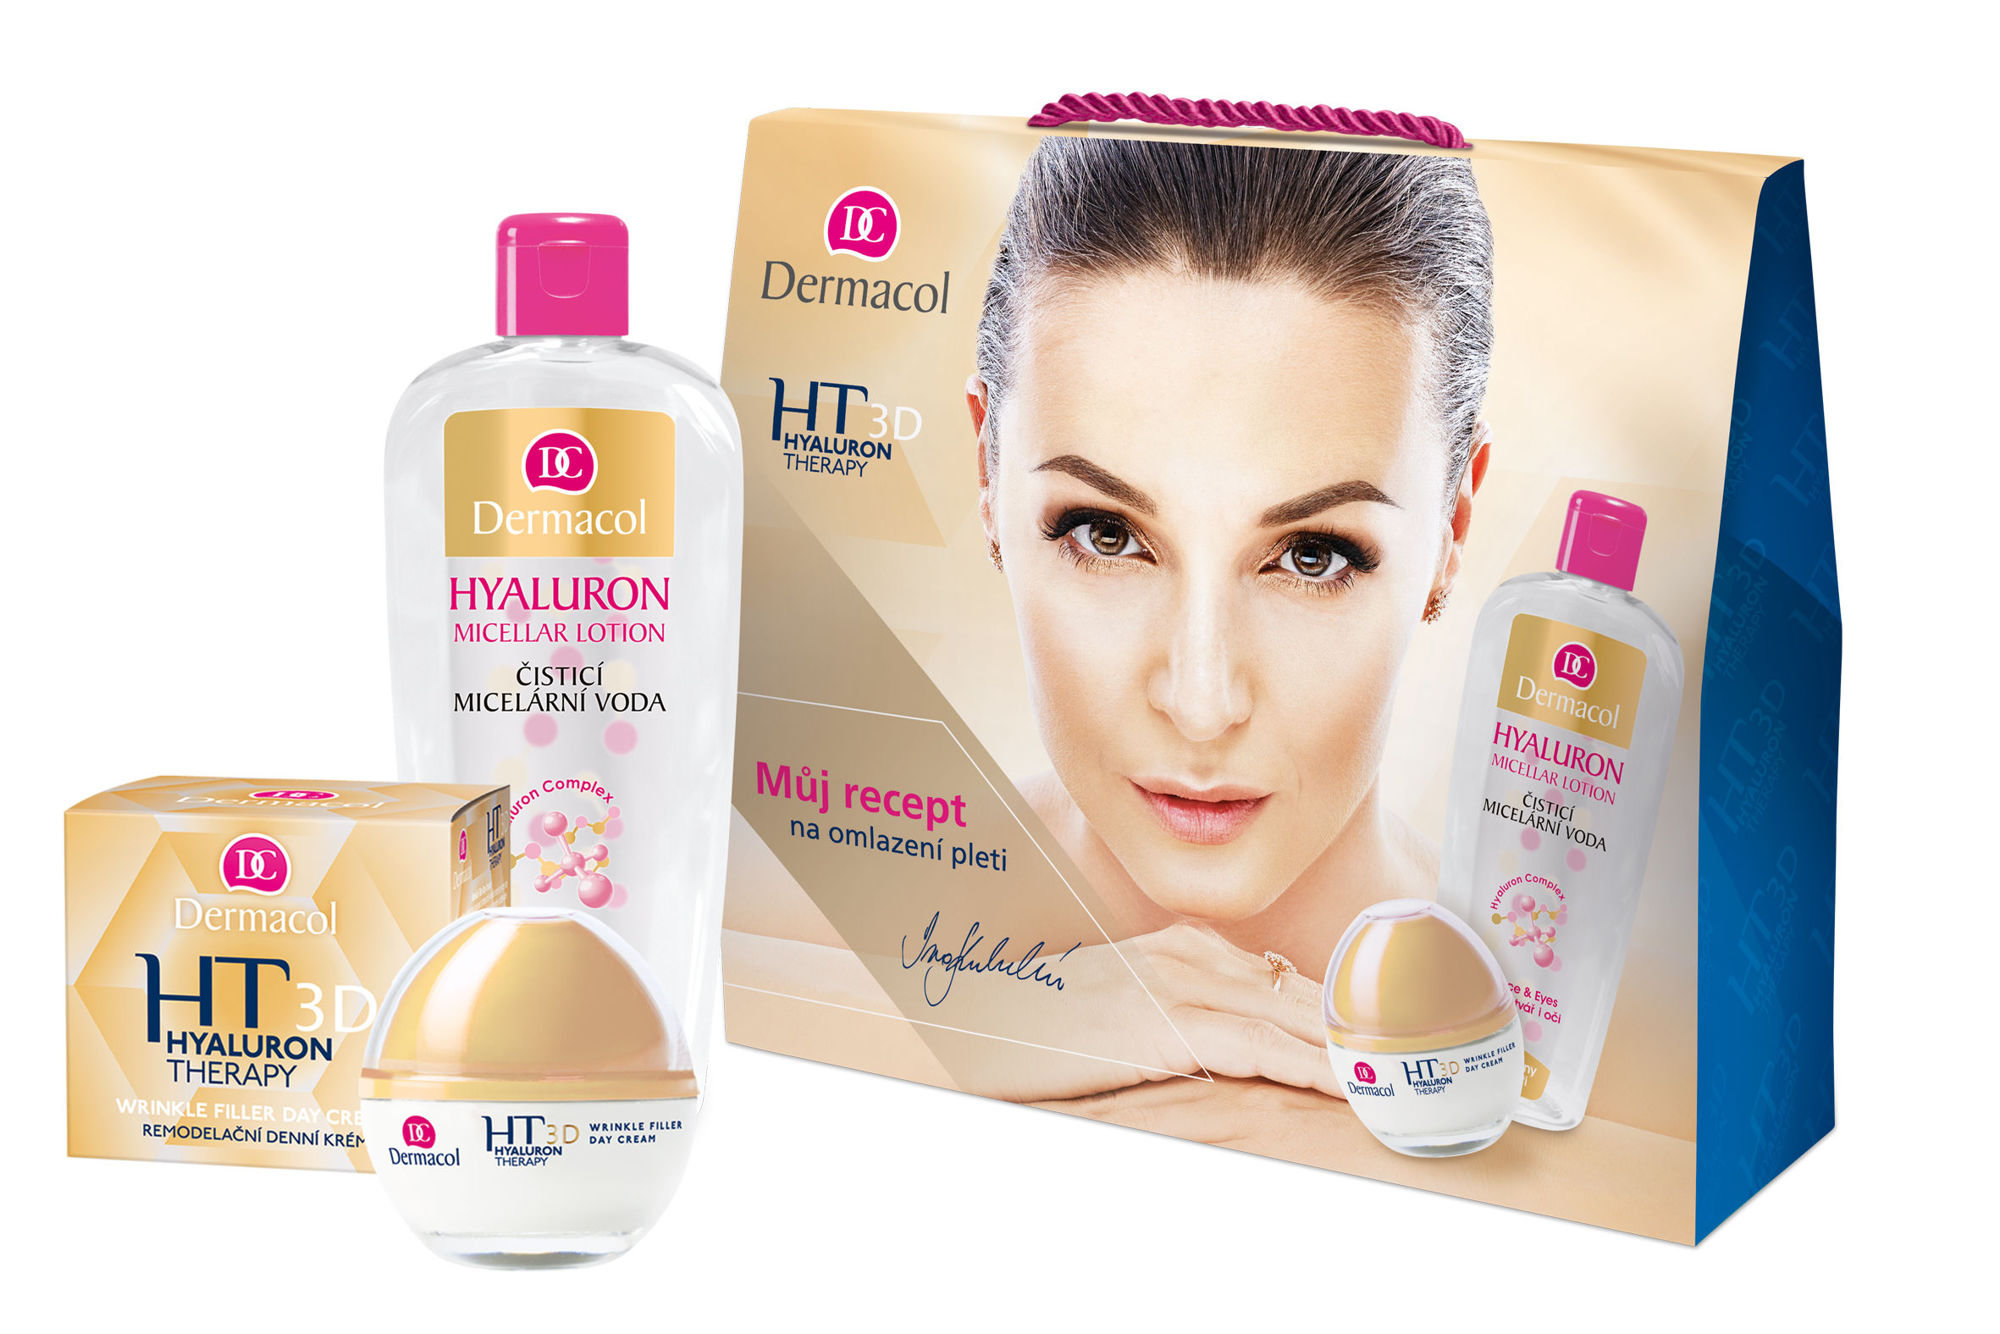 Dermacol 3D Hyaluron Therapy Set